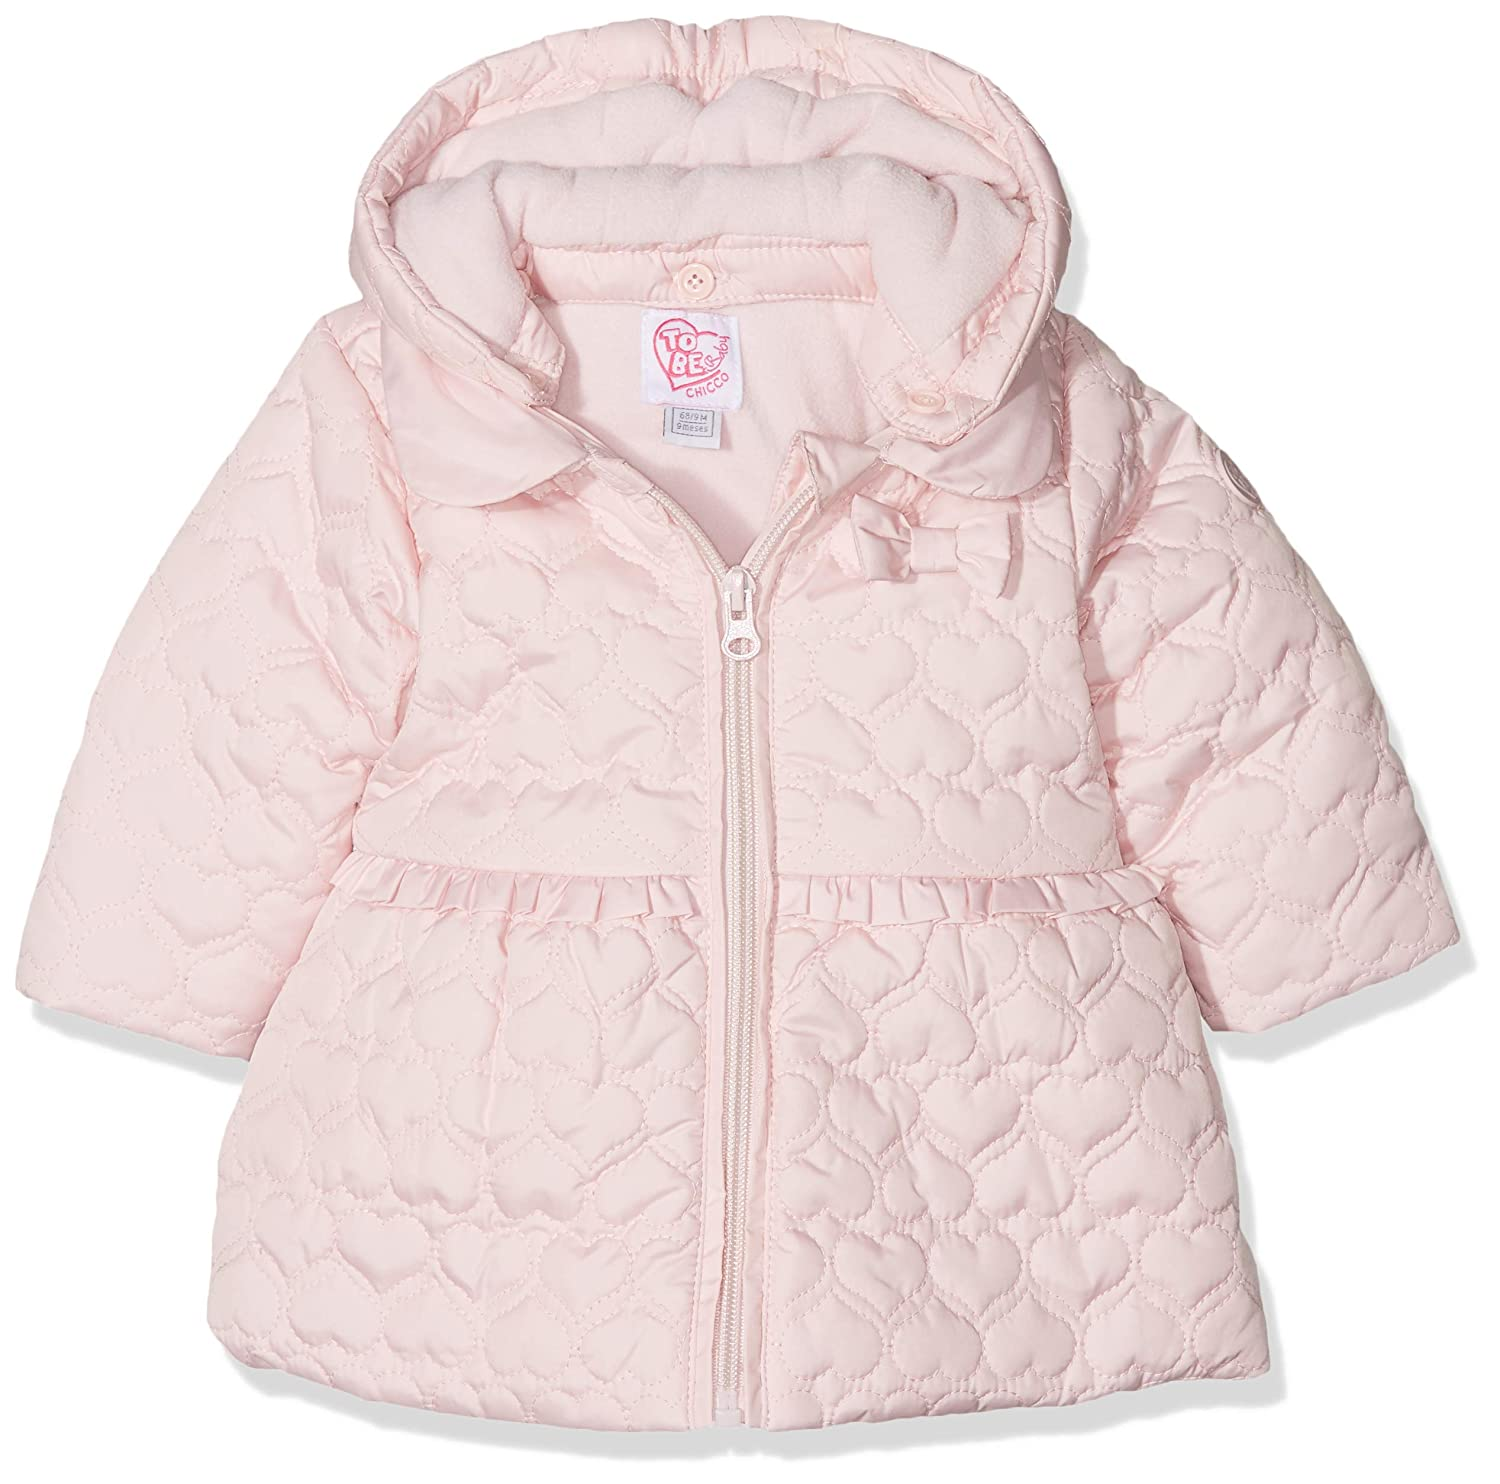 Chicco Baby Girls' Track Jacket 09087306000000